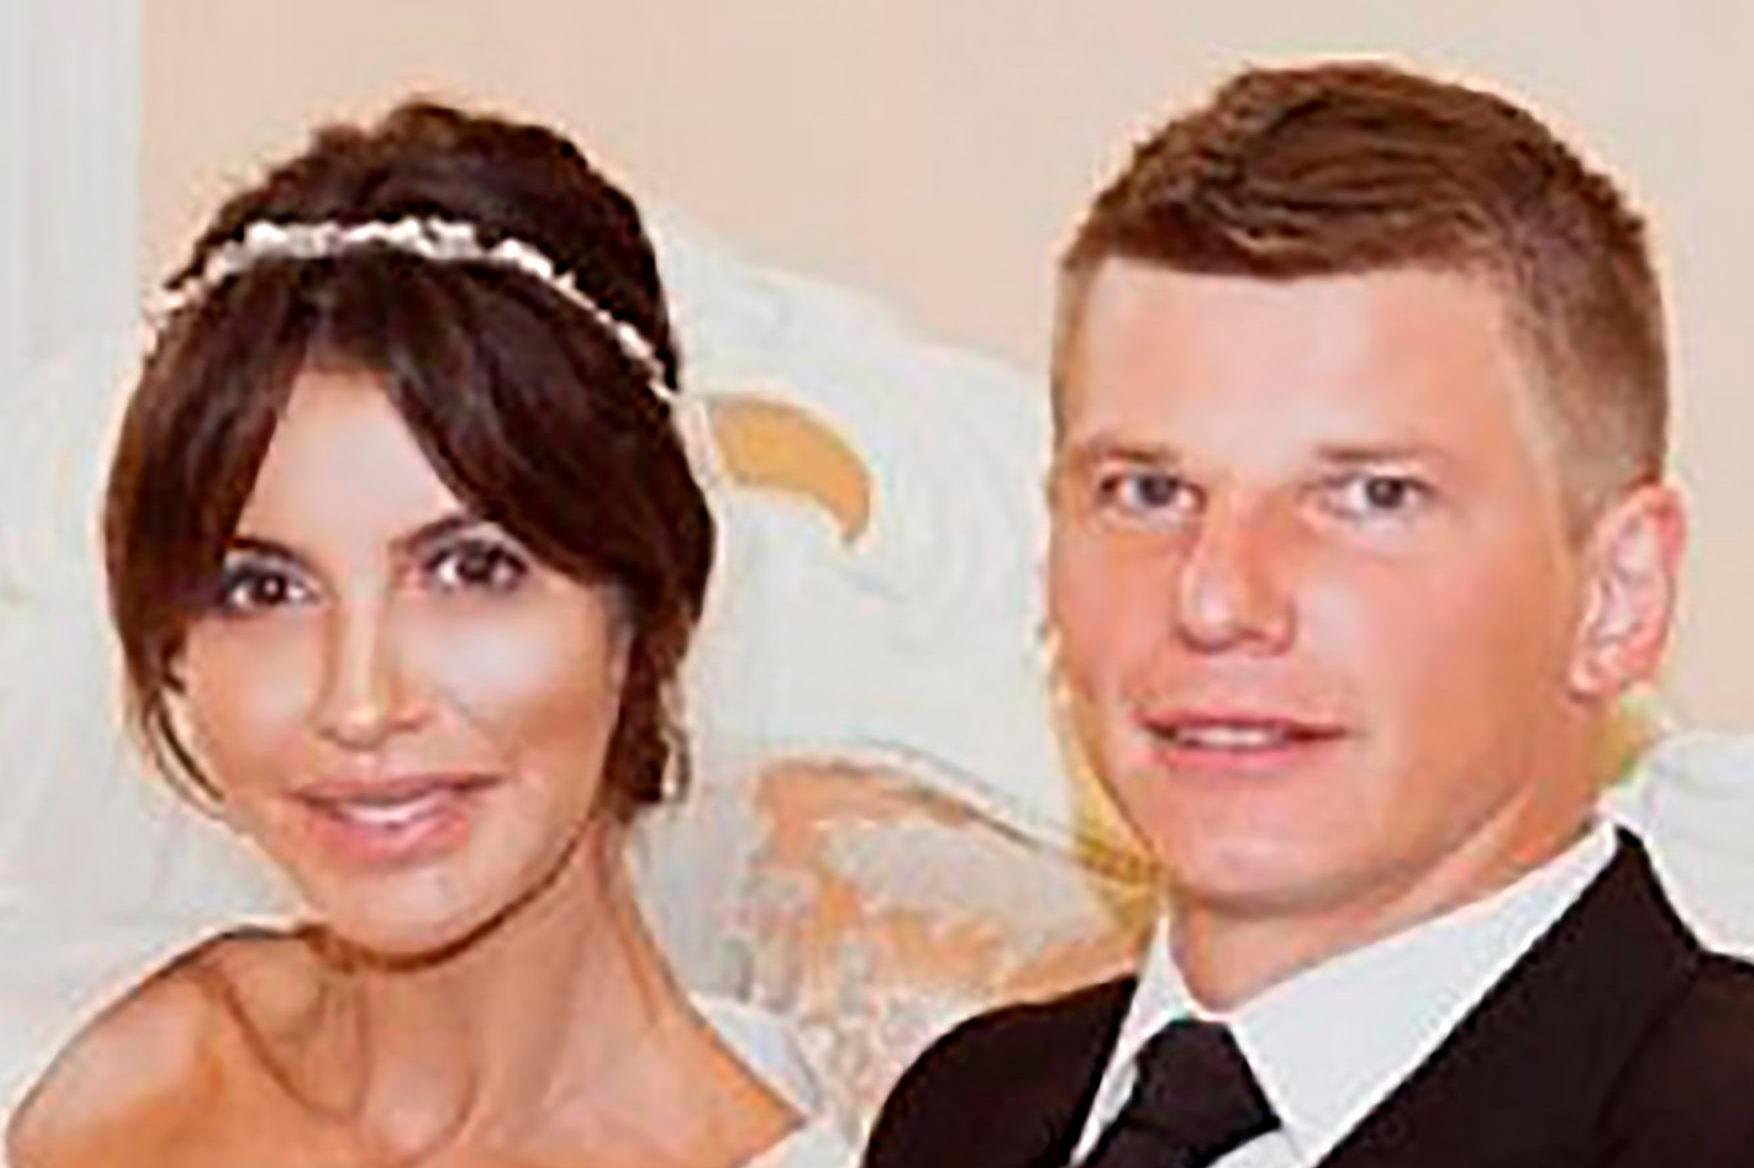 Arsenal legend Andrey Arshavin's wife Alisa reports him to police over 'threats'